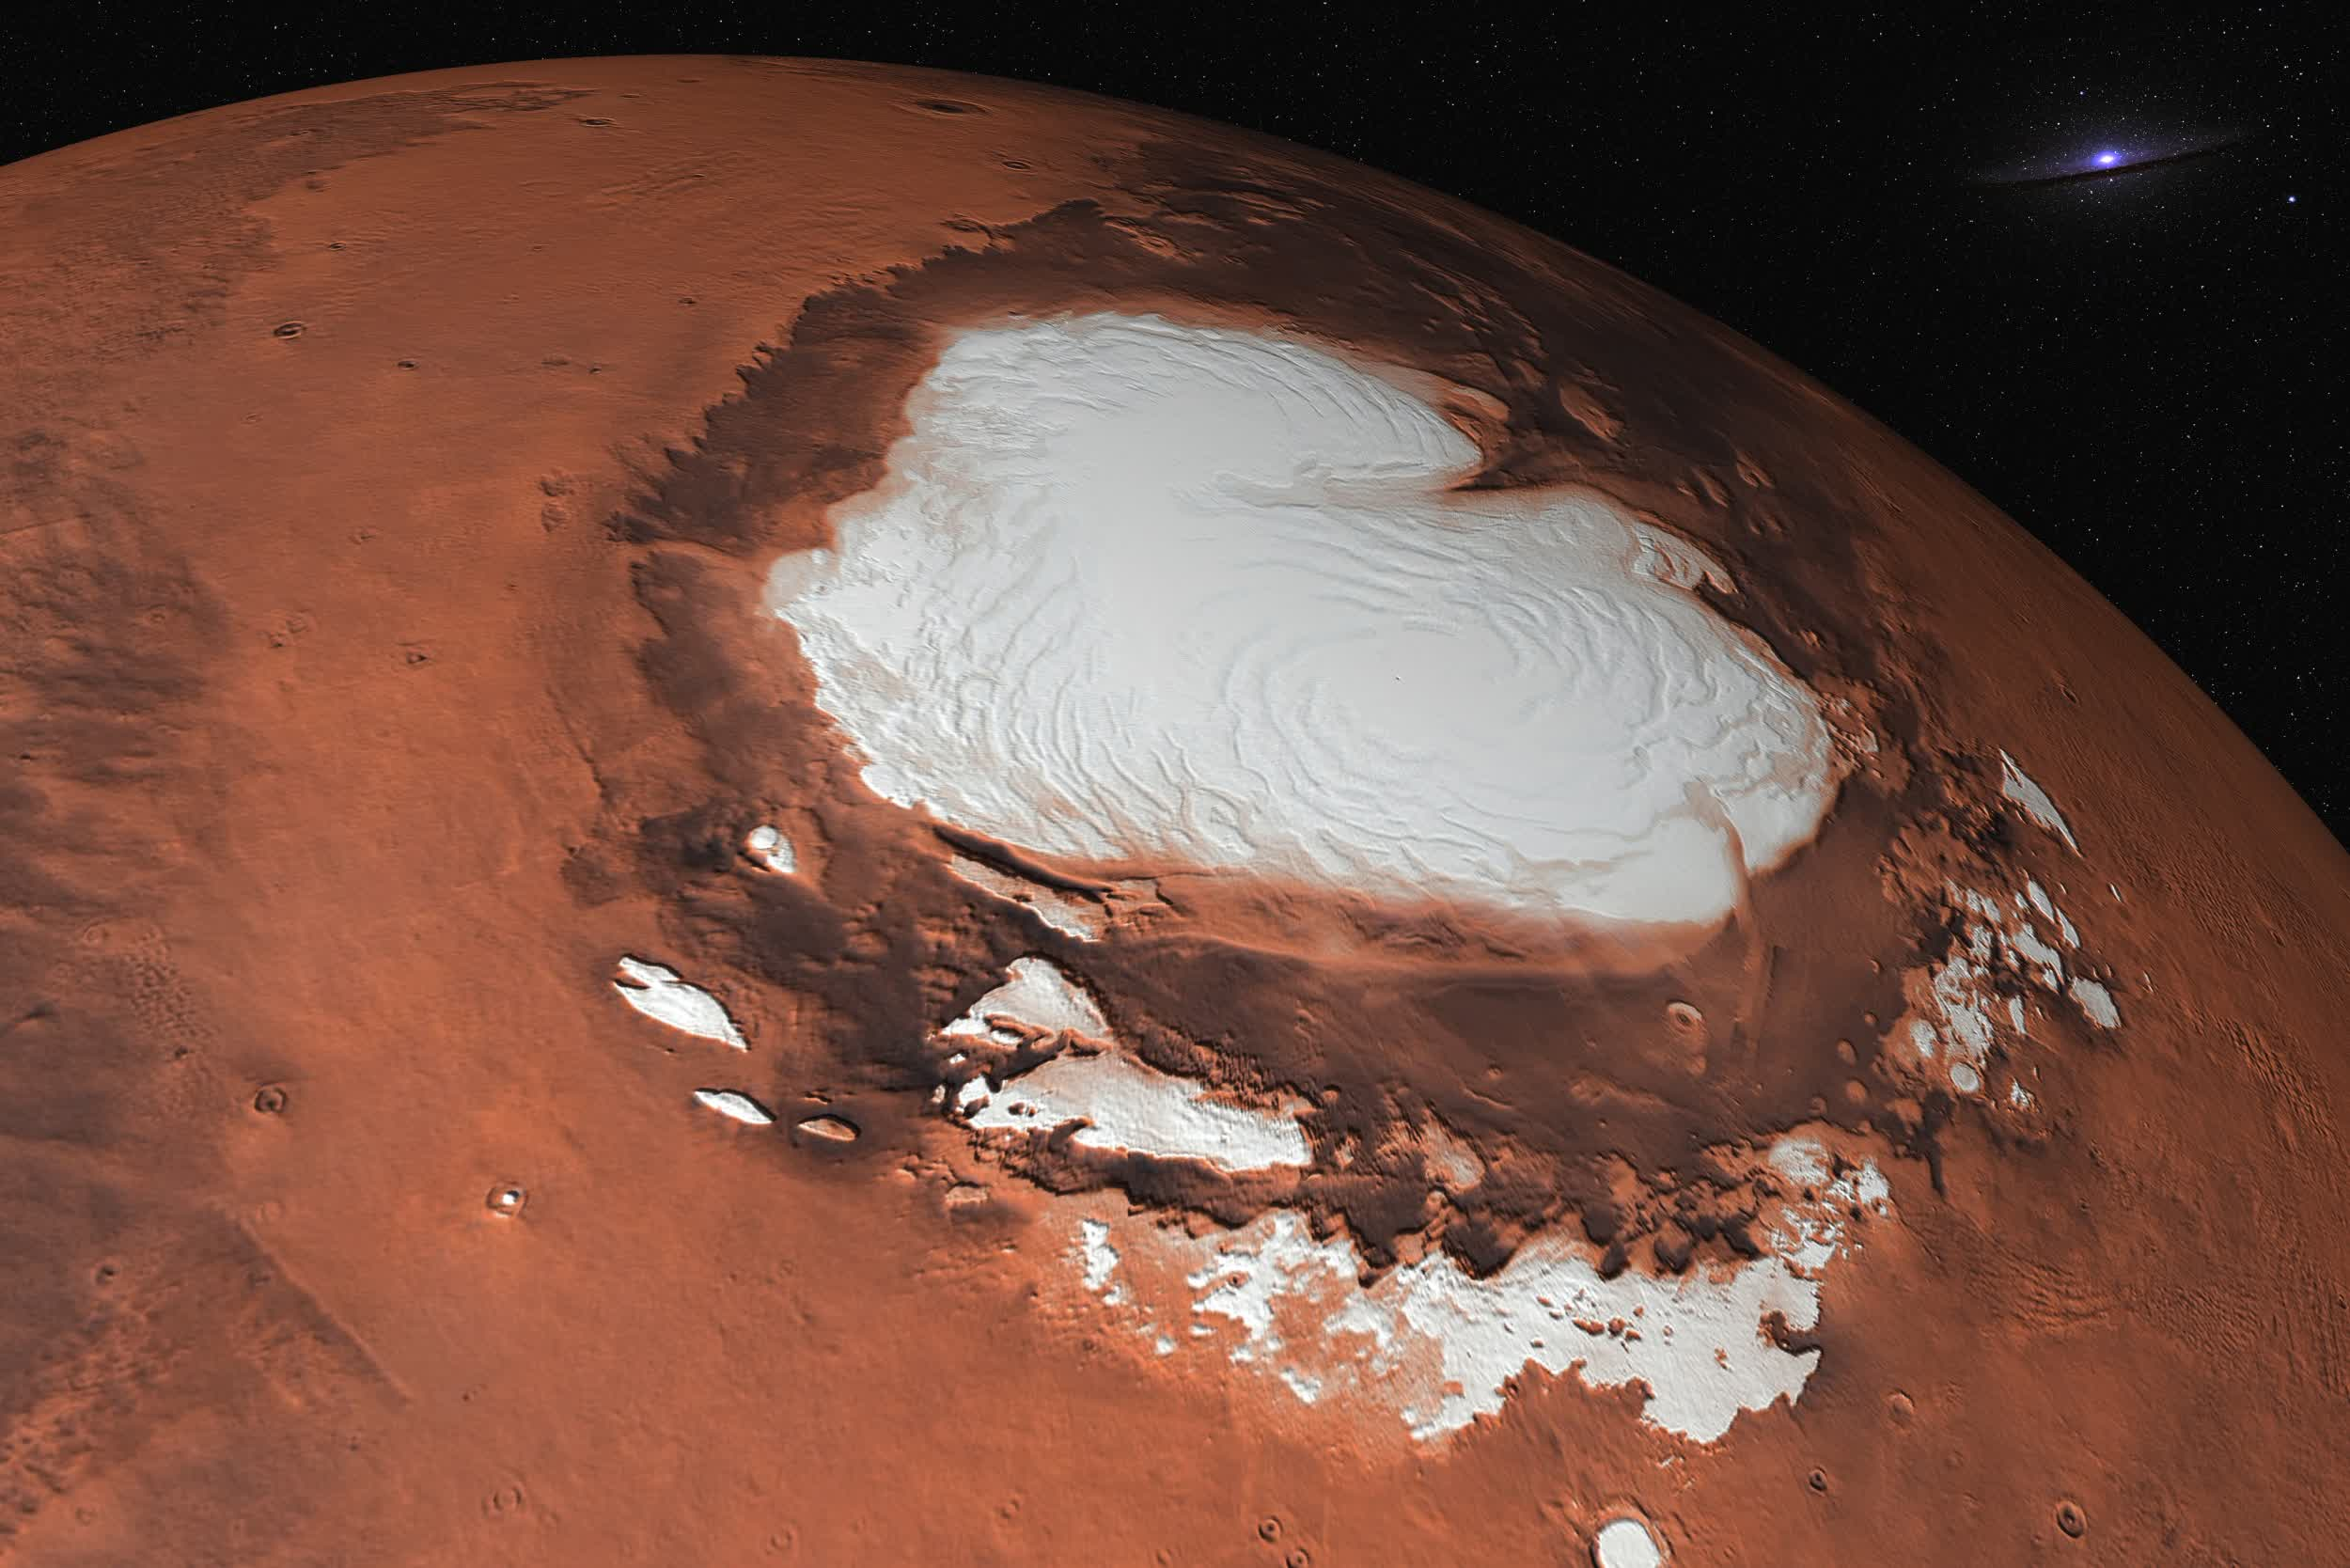 Researchers present additional evidence to support claim of liquid water on Mars